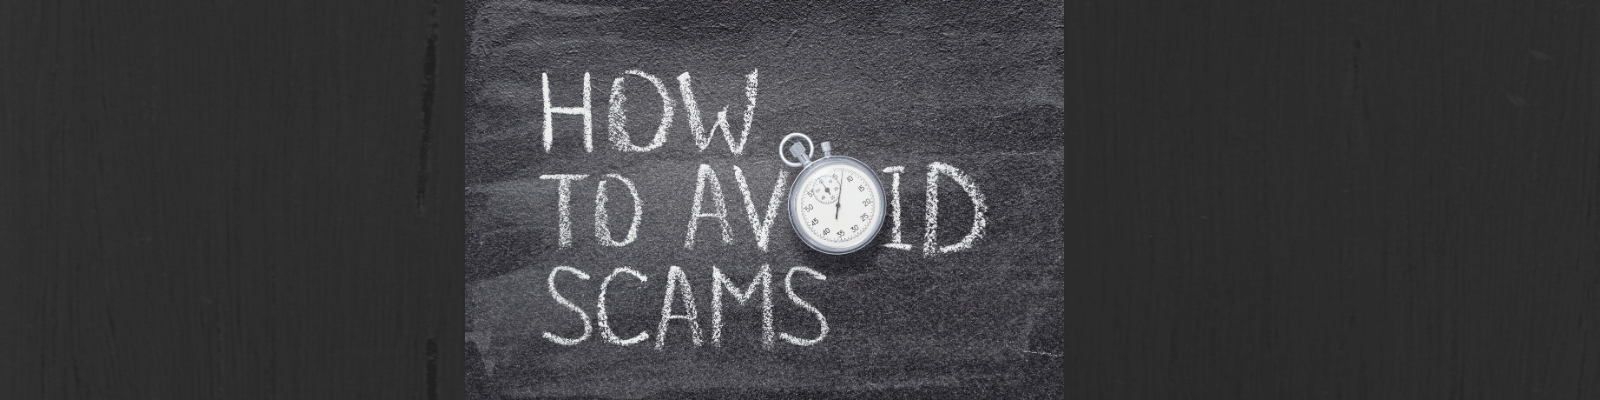 How to Avoid Scams With Shoppers Confidential